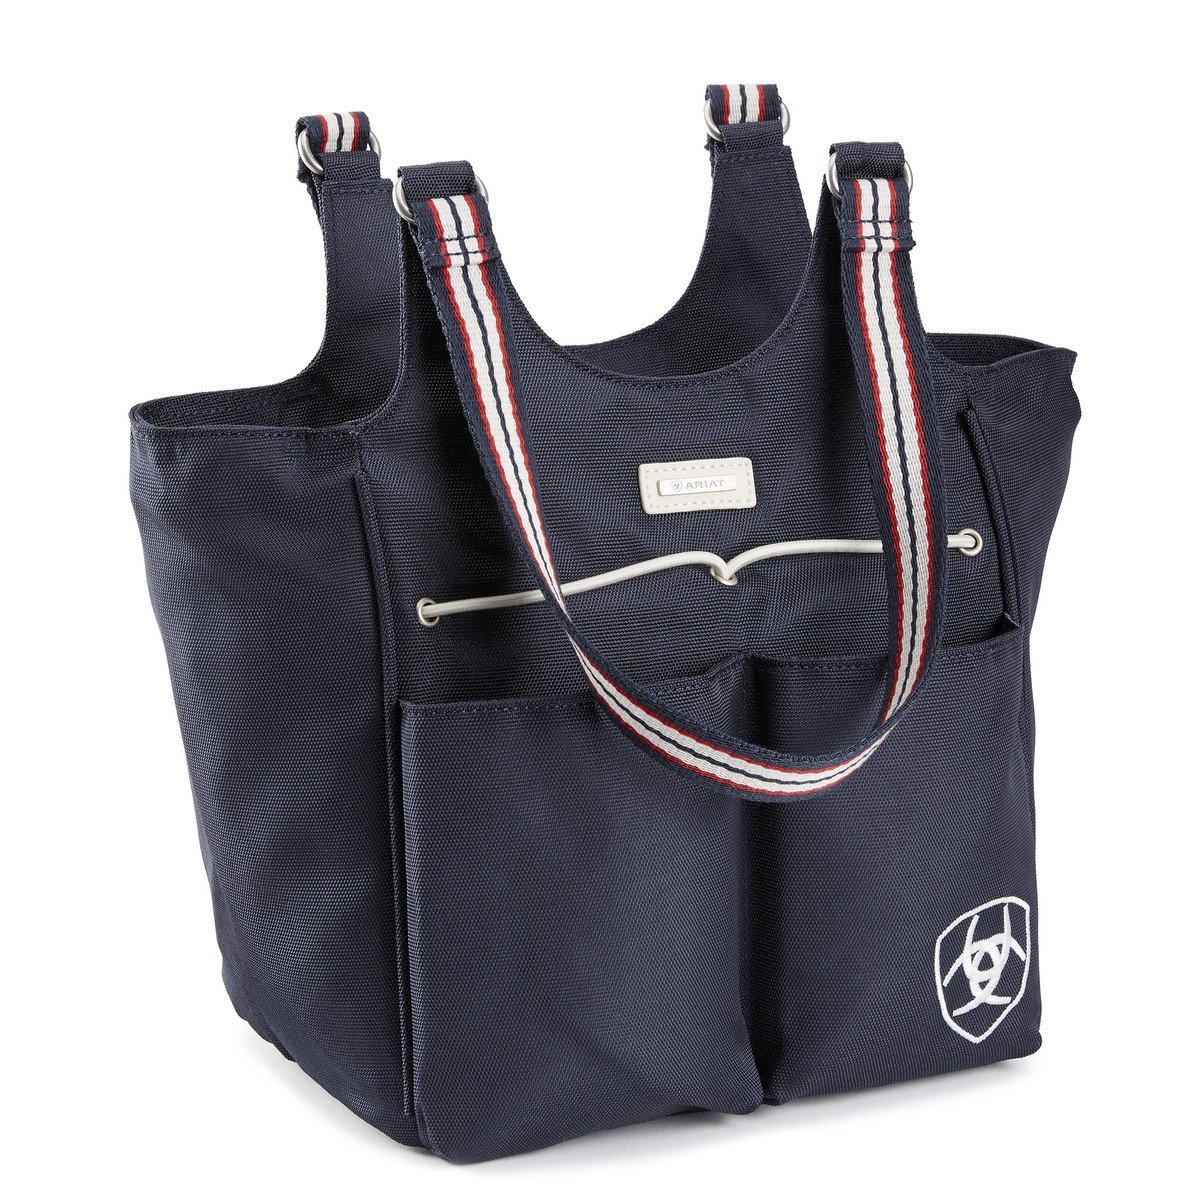 Imagem de Ariat Bag Team Mini Carryall Navy One Size